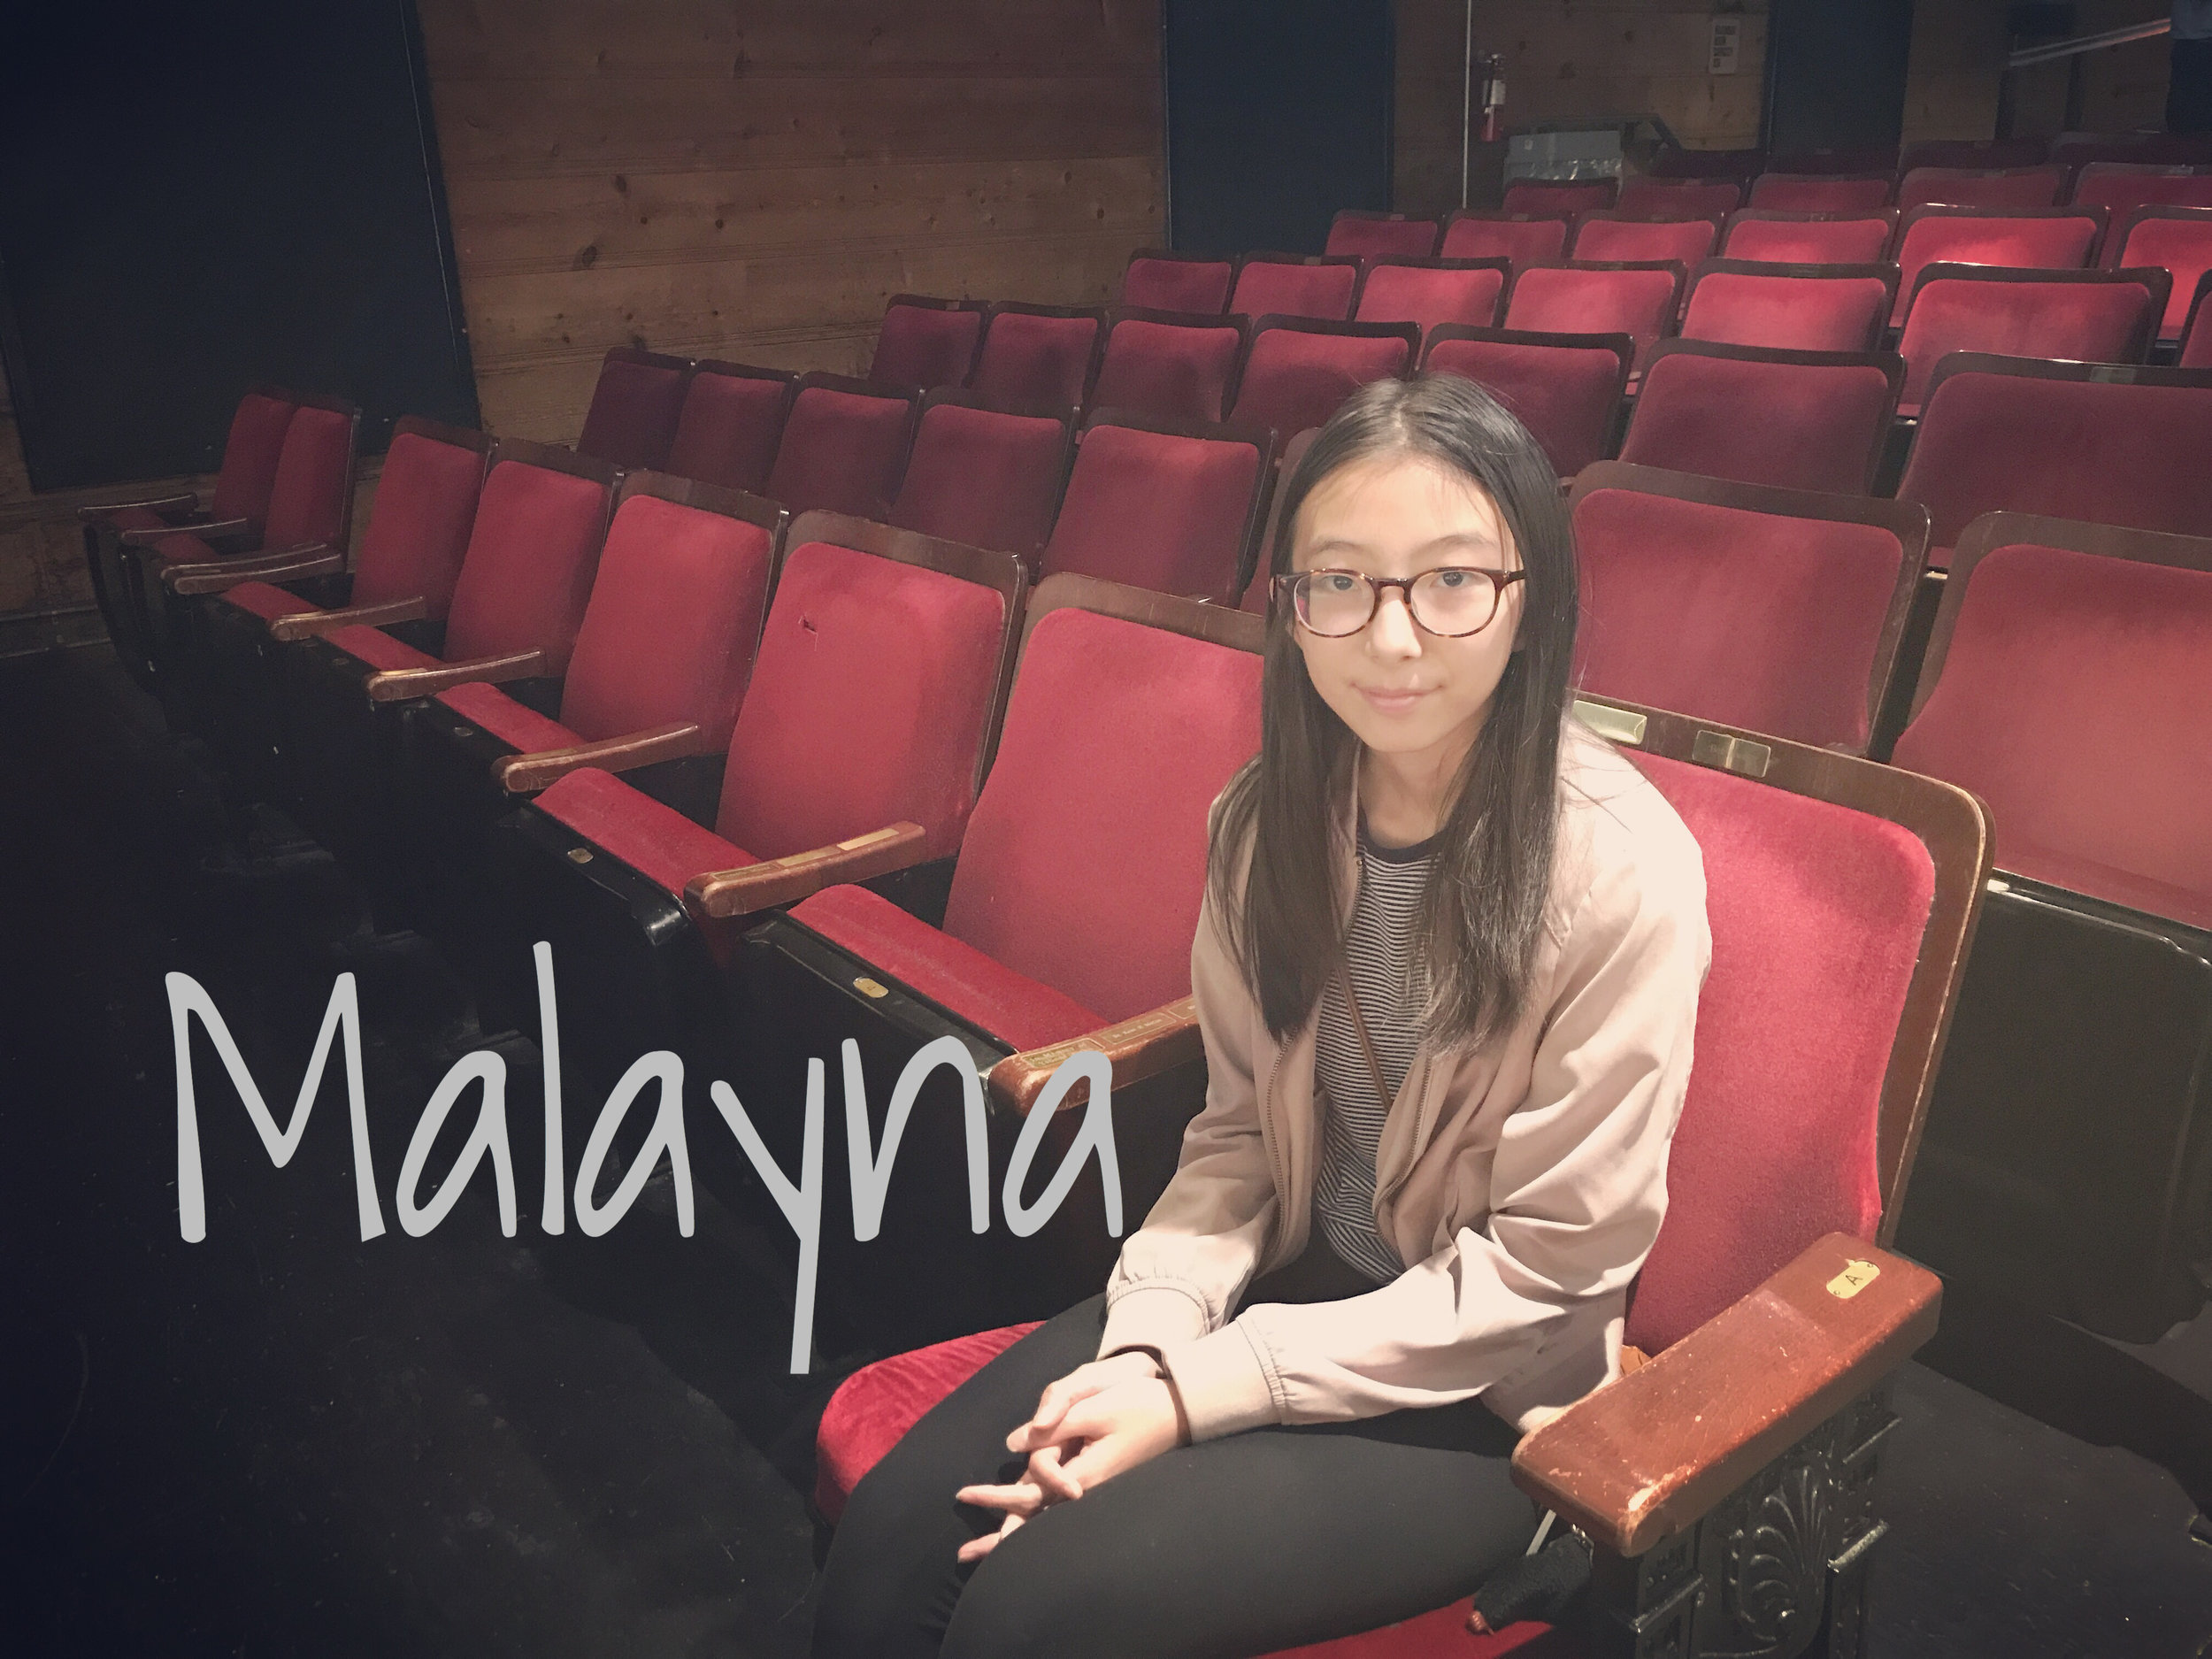 Malayna - READ WHAT MALAYNA HAS TO SAY ABOUT THE REVOLUTIONISTS!READ WHAT MALAYNA HAS TO SAY ABOUT GREAT EXPECTATIONS!READ WHAT MALAYNA HAS TO SAY ABOUT BROOKLYN BRIDGE!